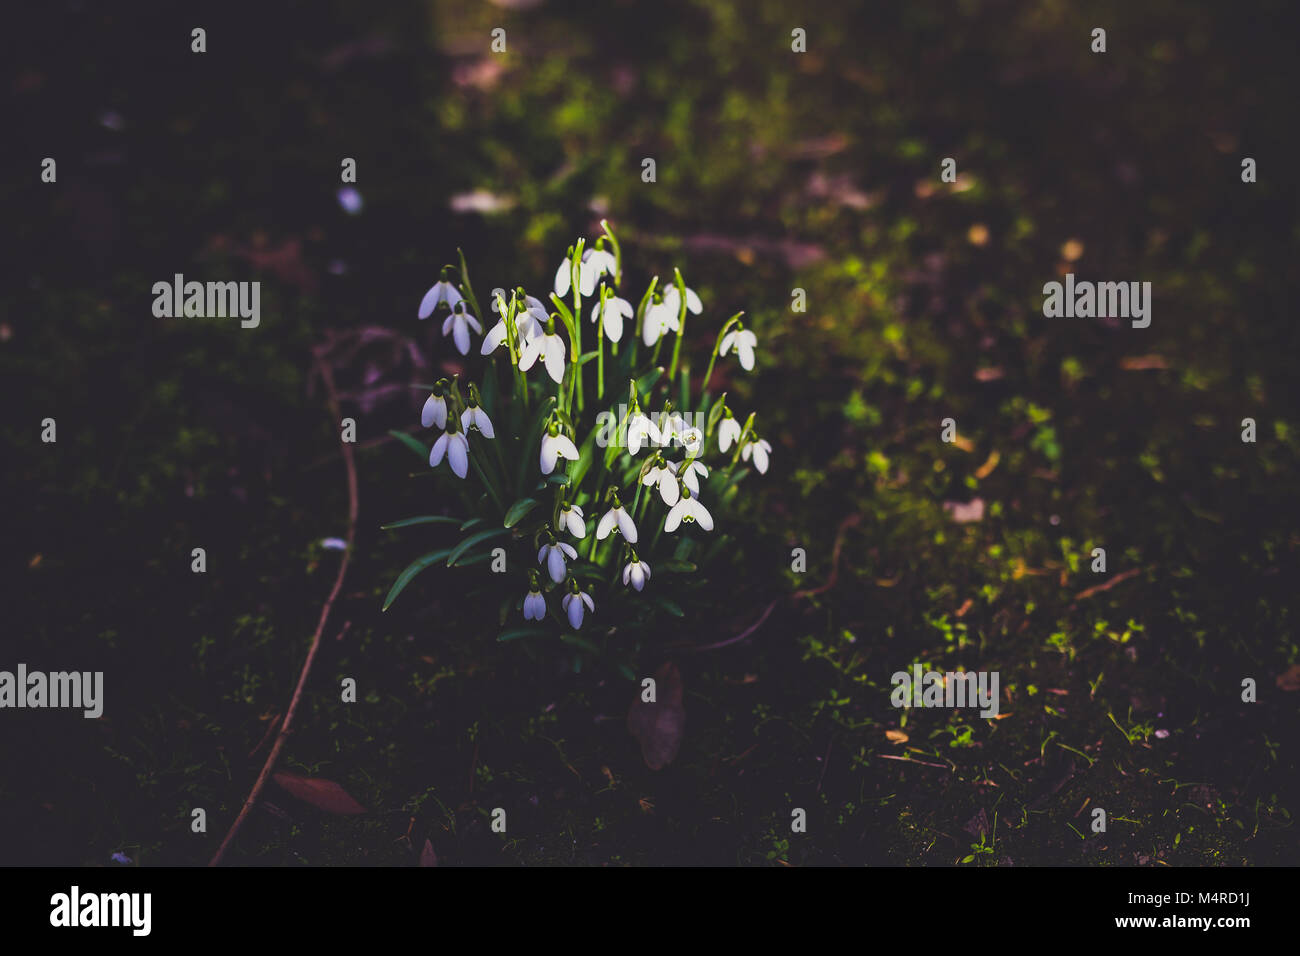 snowdrop flowers in a meadow with rays of sunshine on them surrounded by shadow - Stock Image